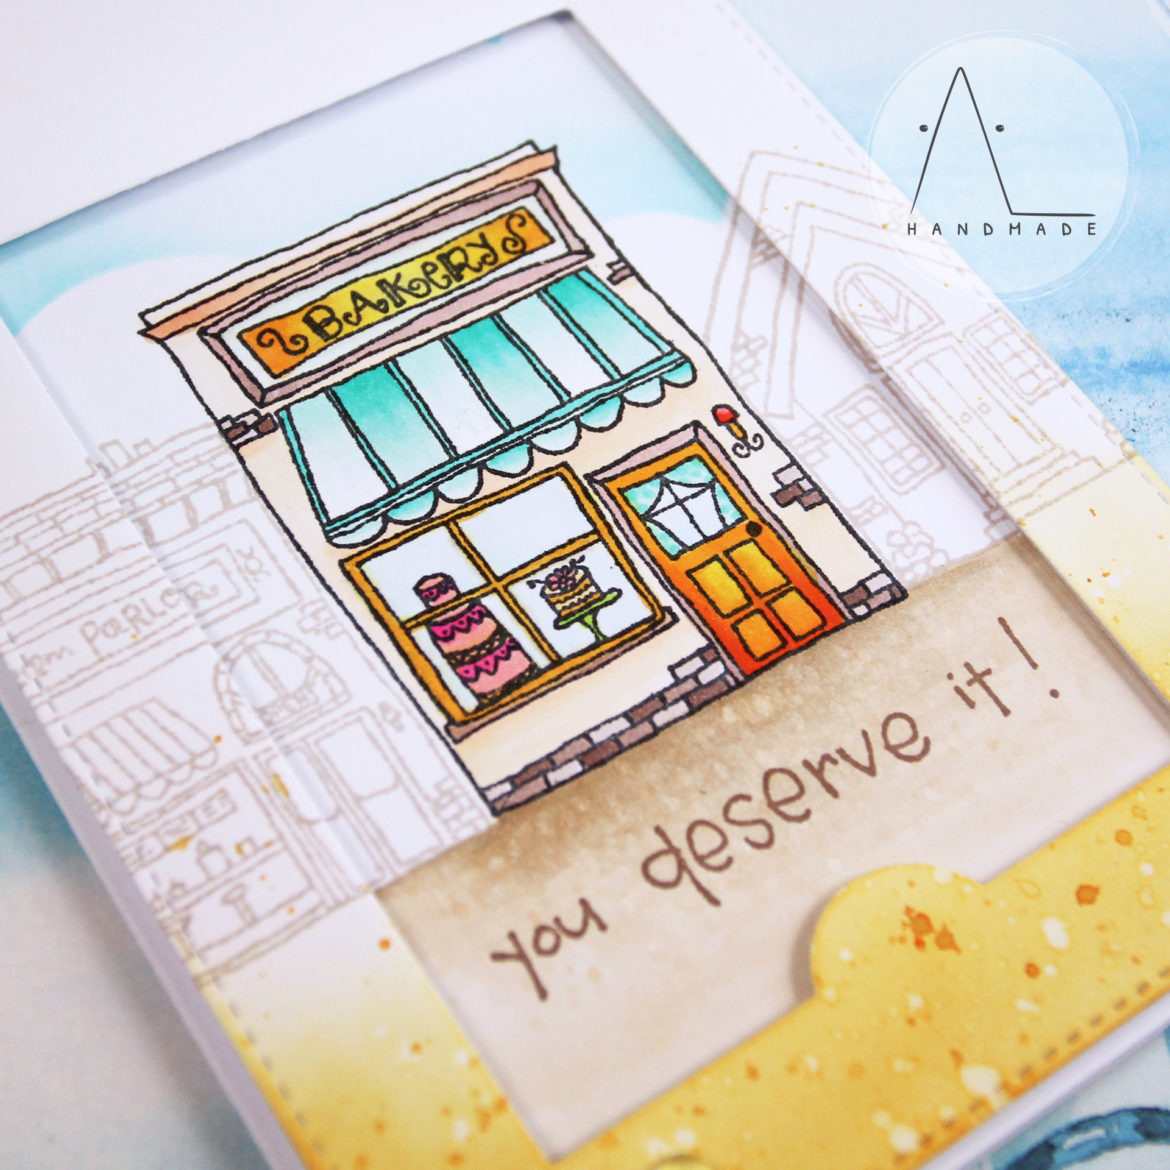 AL handmade - Sweet Interactive Card